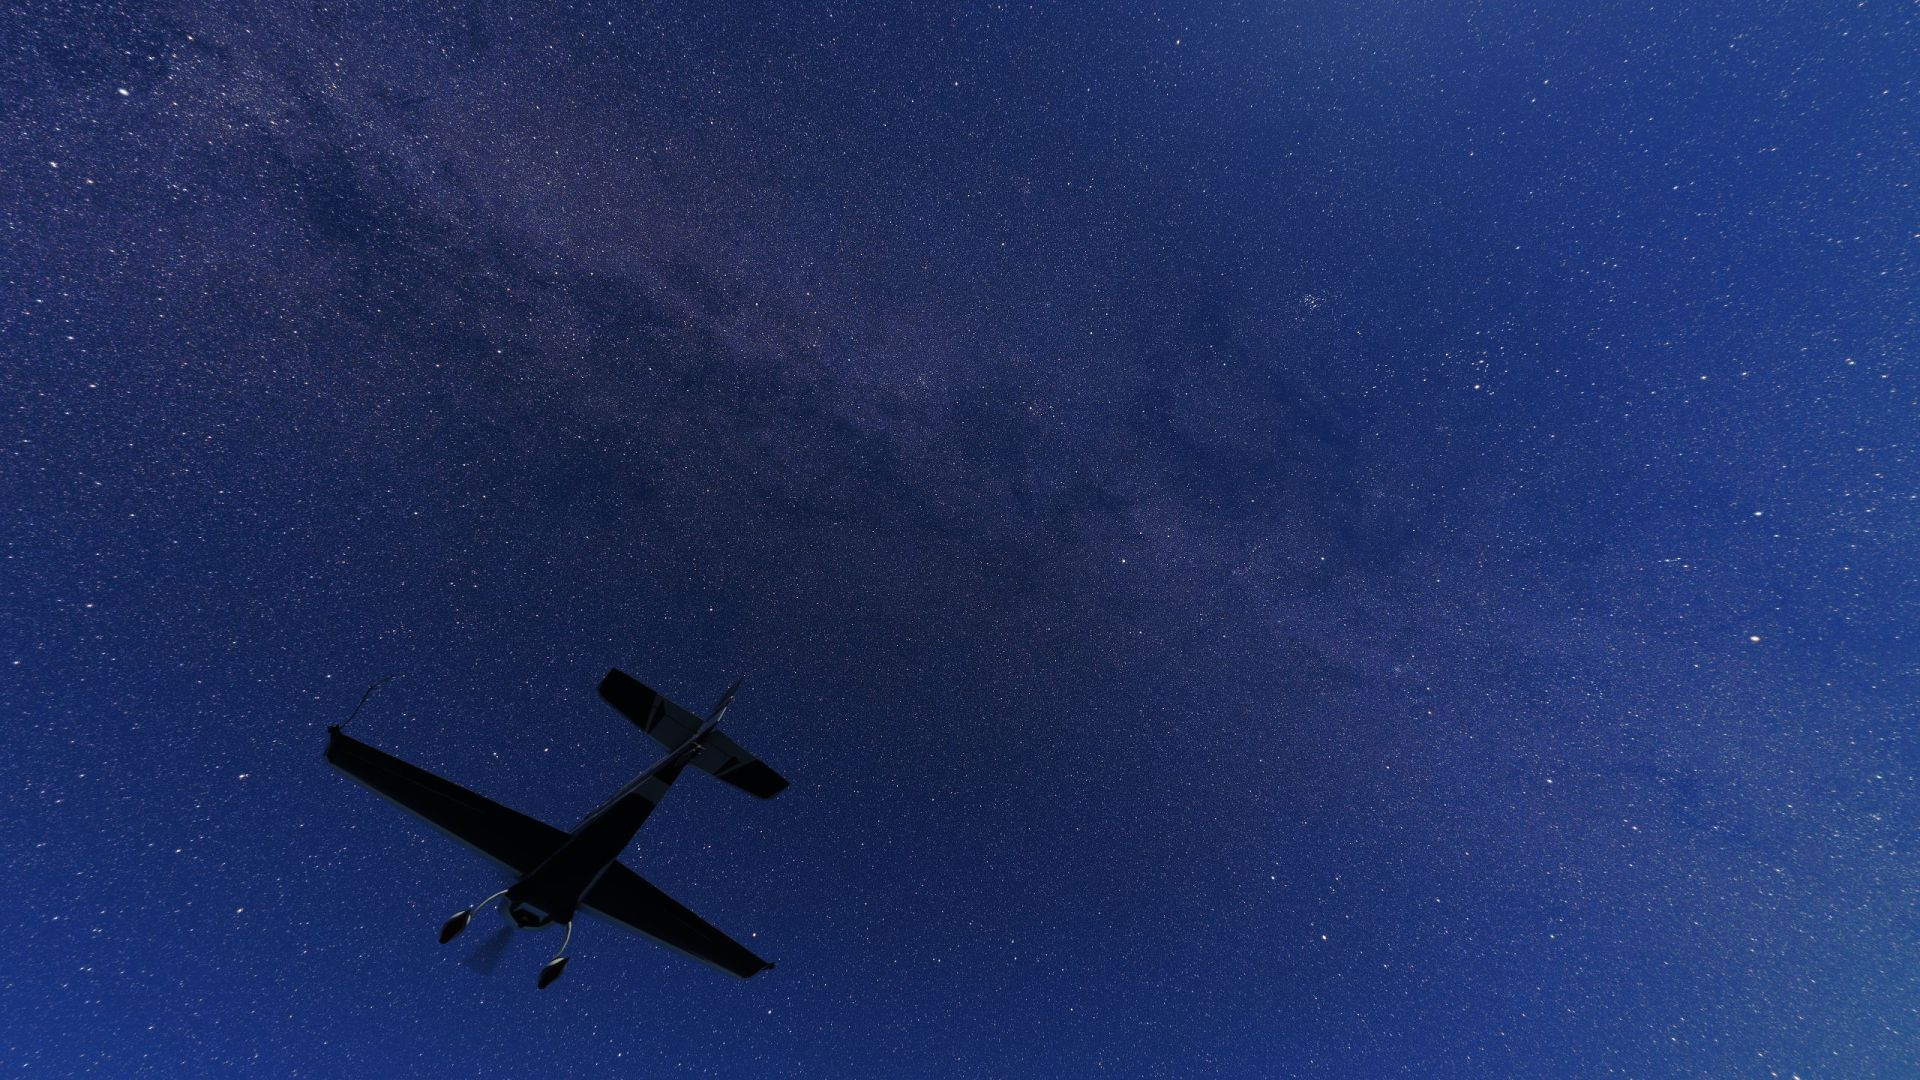 In Microsoft Flight Simulator, a plane flies below the milky way